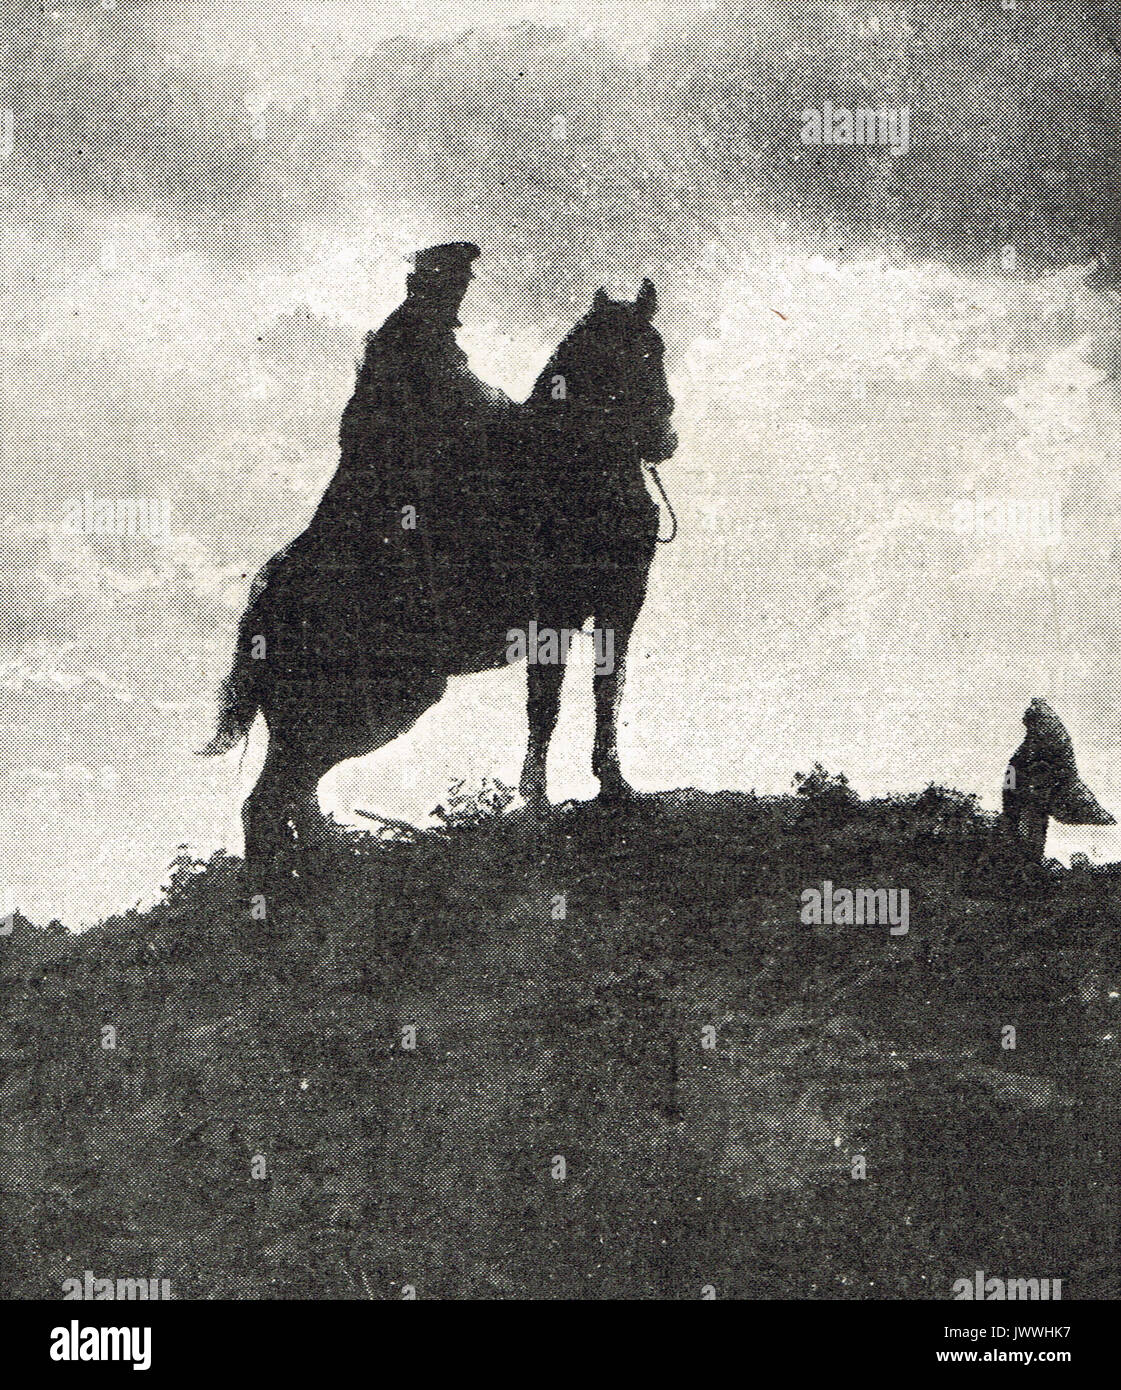 Silhouette, Lone Cavalryman at the Somme, WW1 - Stock Image